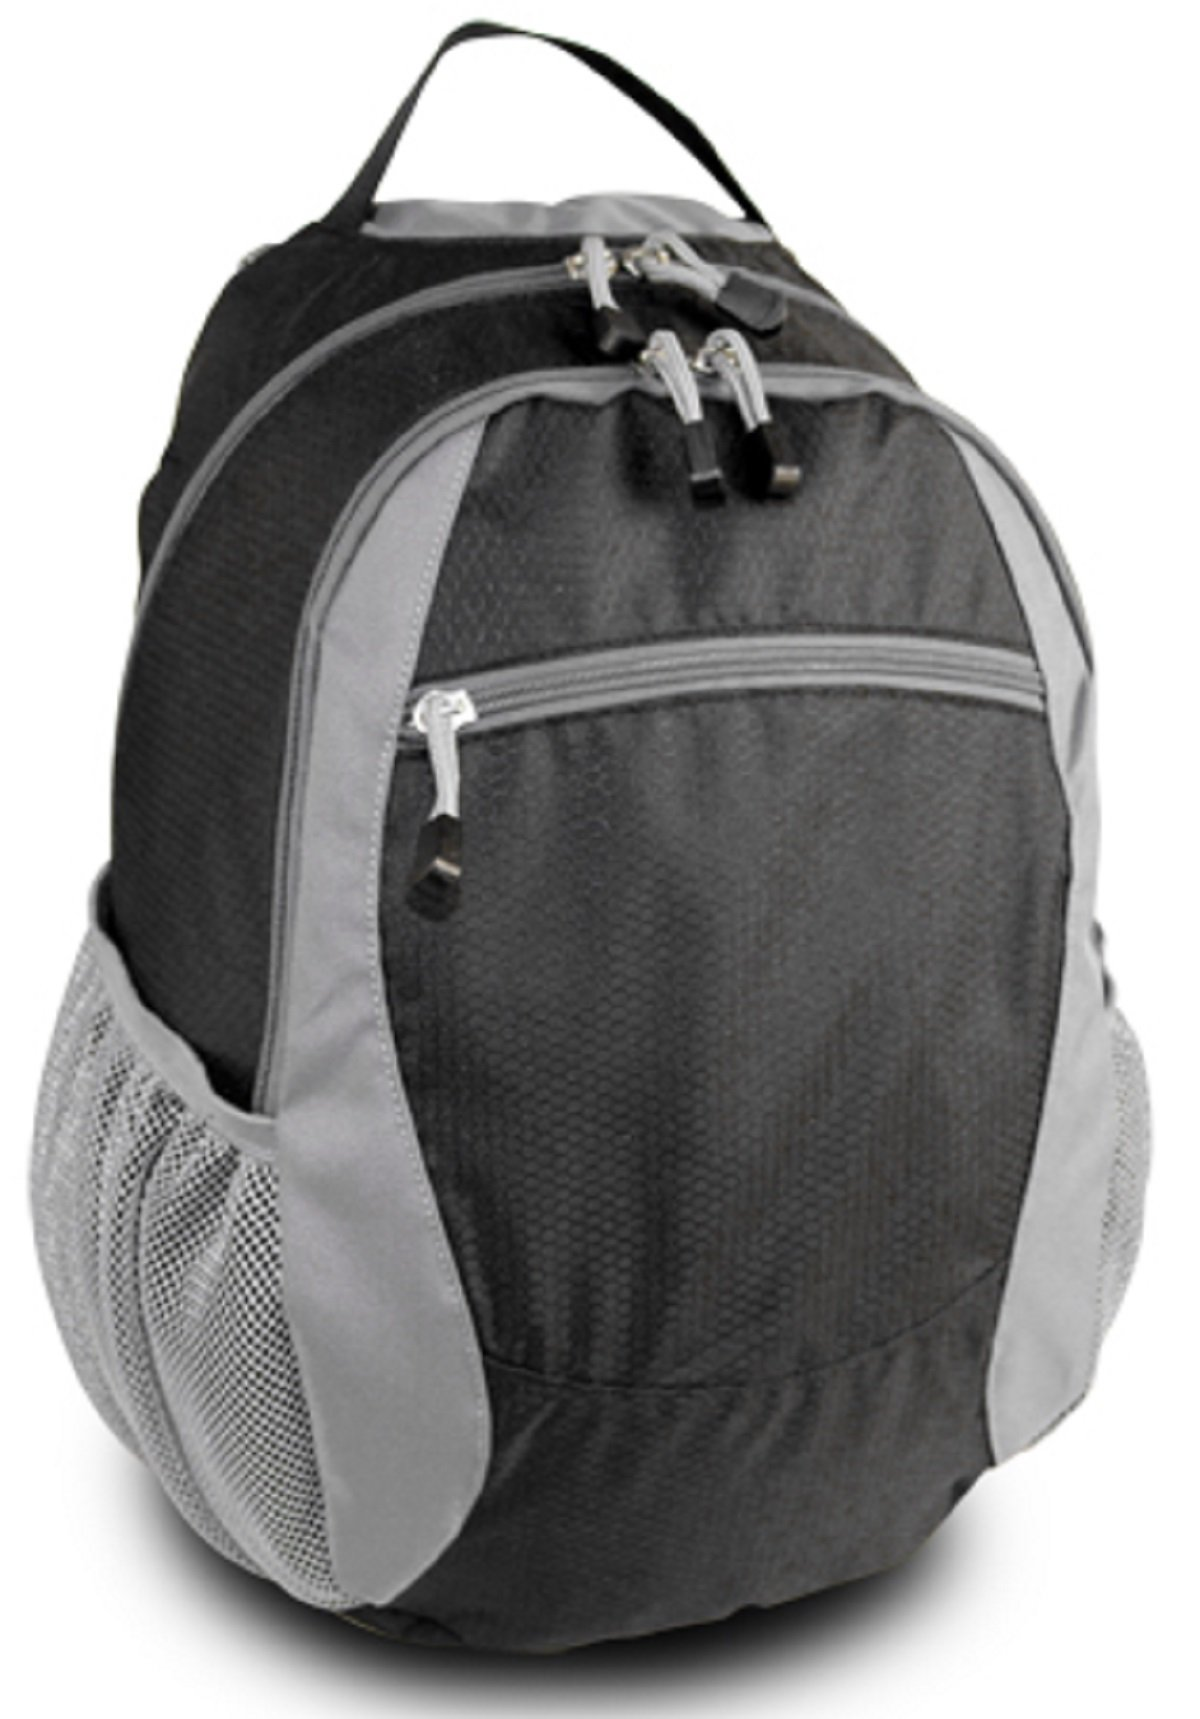 CAMPUS BACKPACK, Black/Gray, Case of 12 by DollarItemDirect